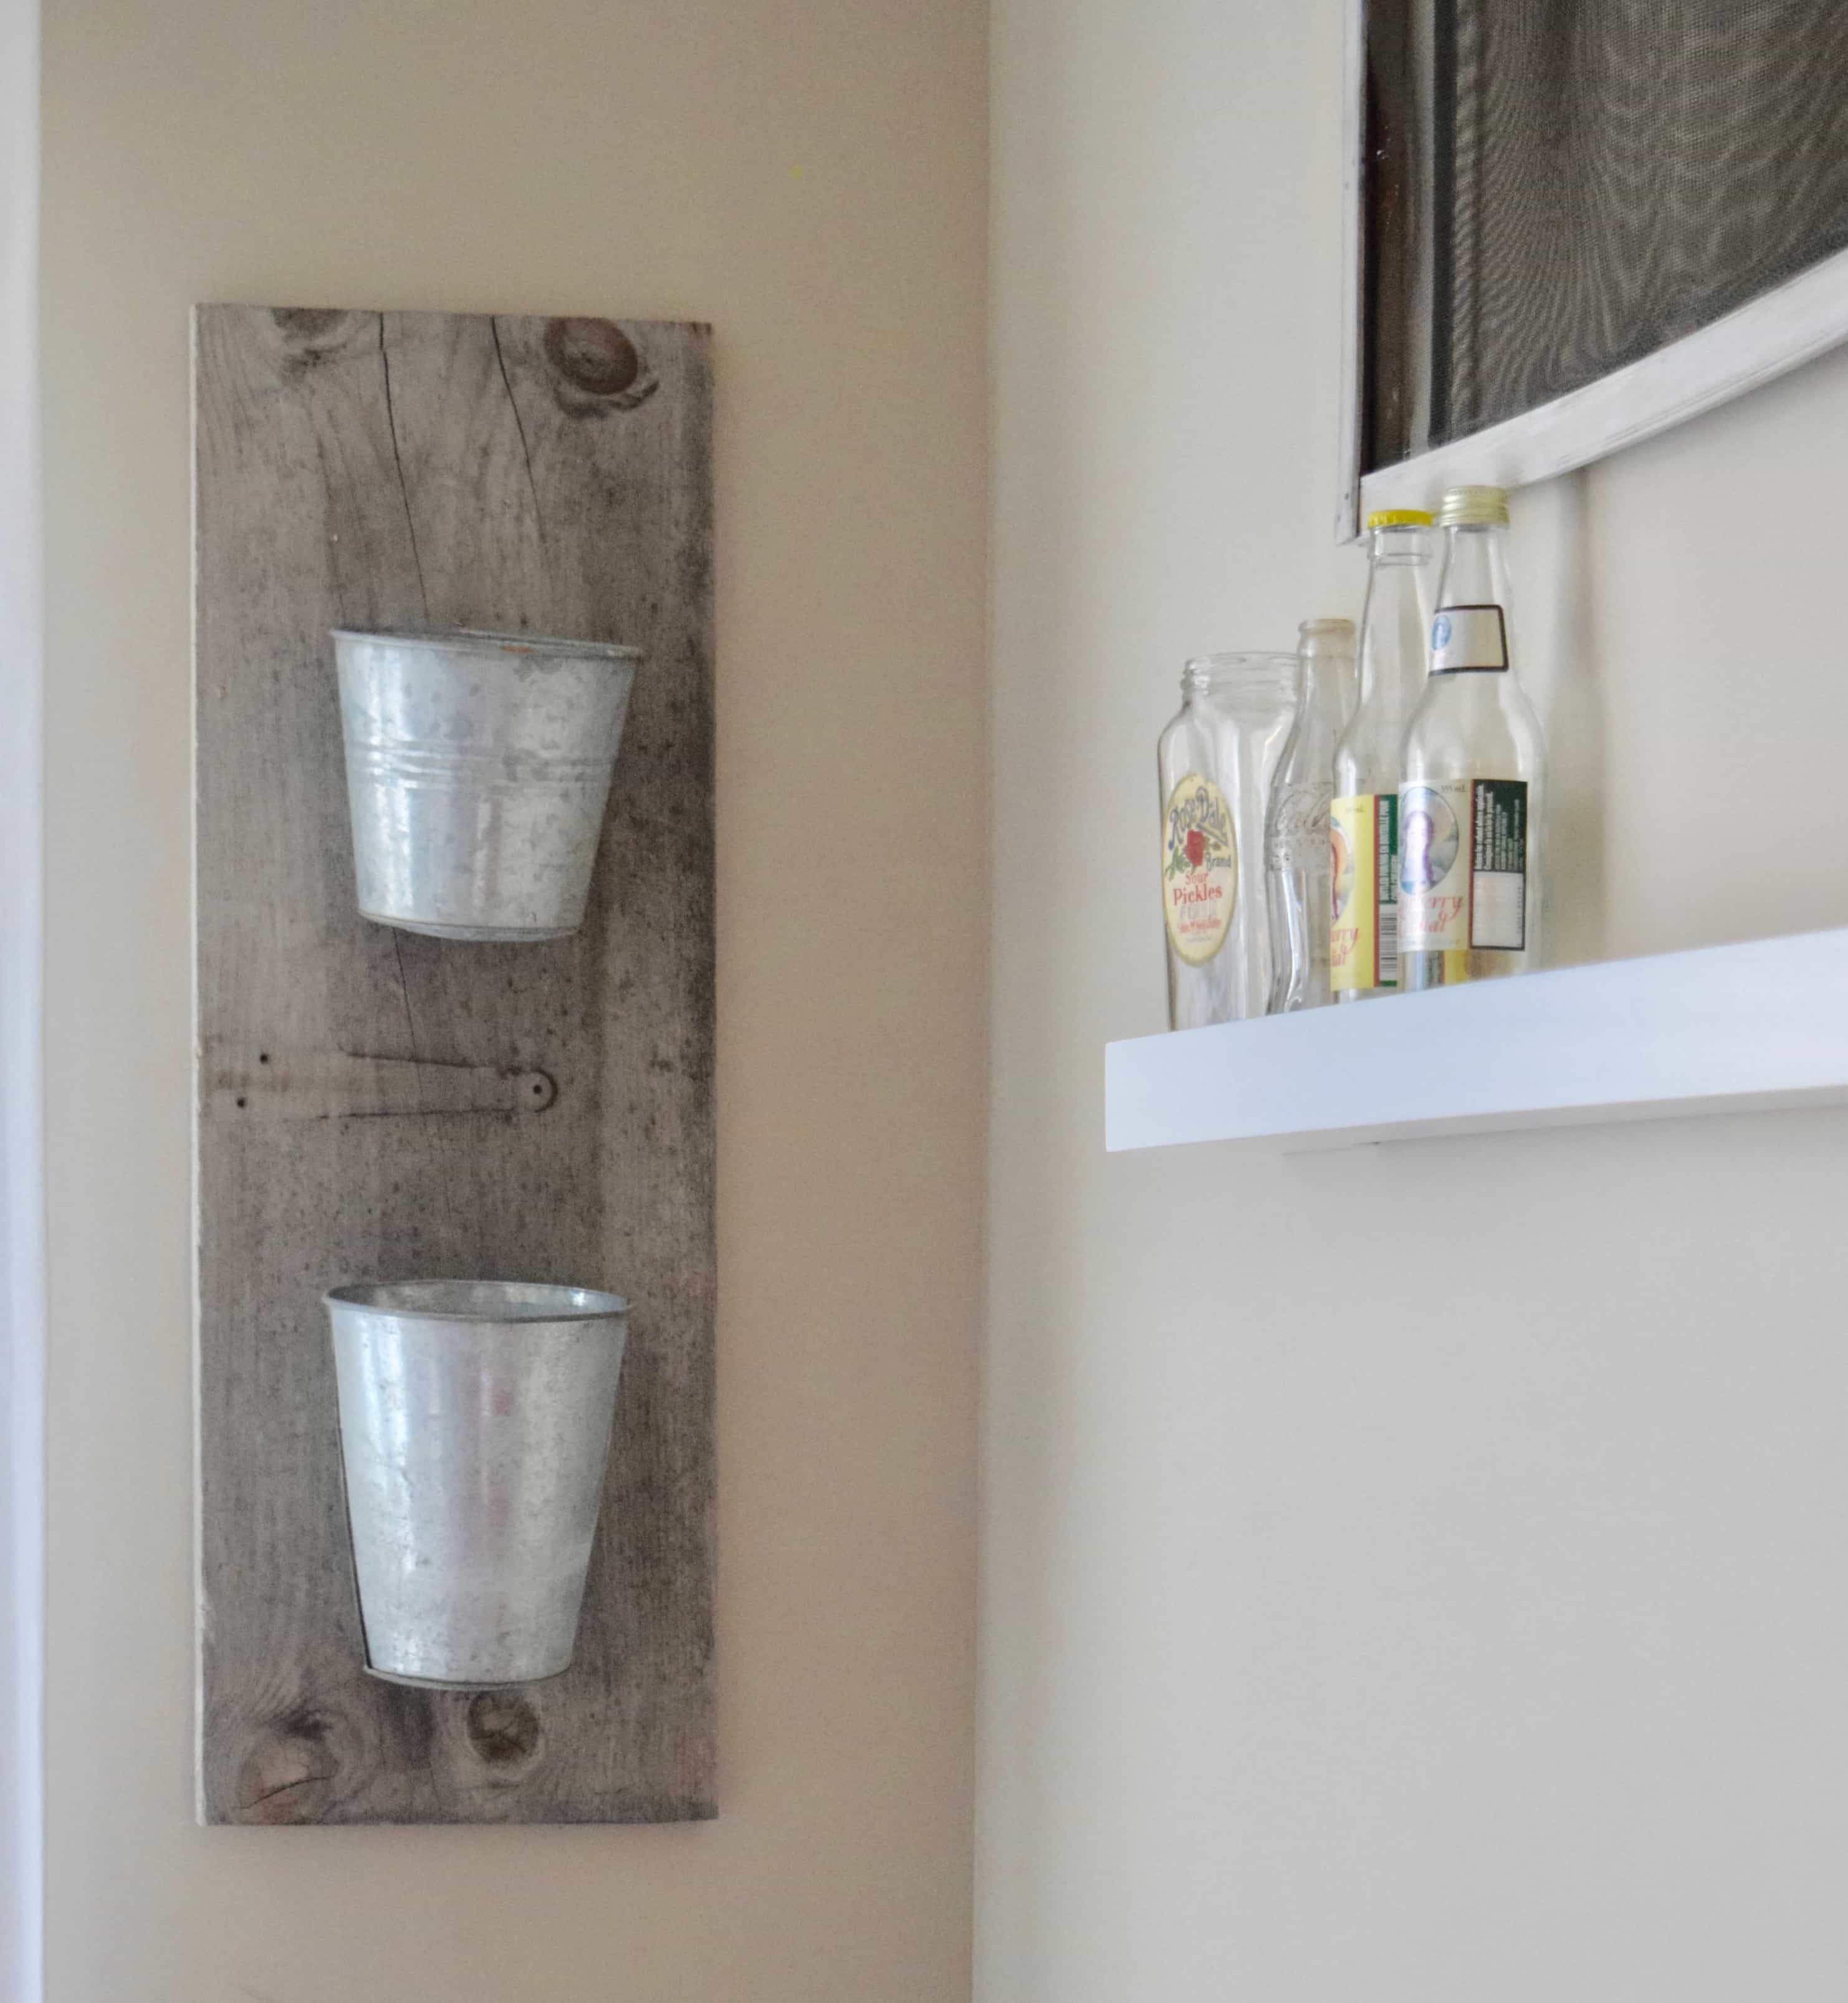 hanging salvaged buckets on reclaimed wood for plants